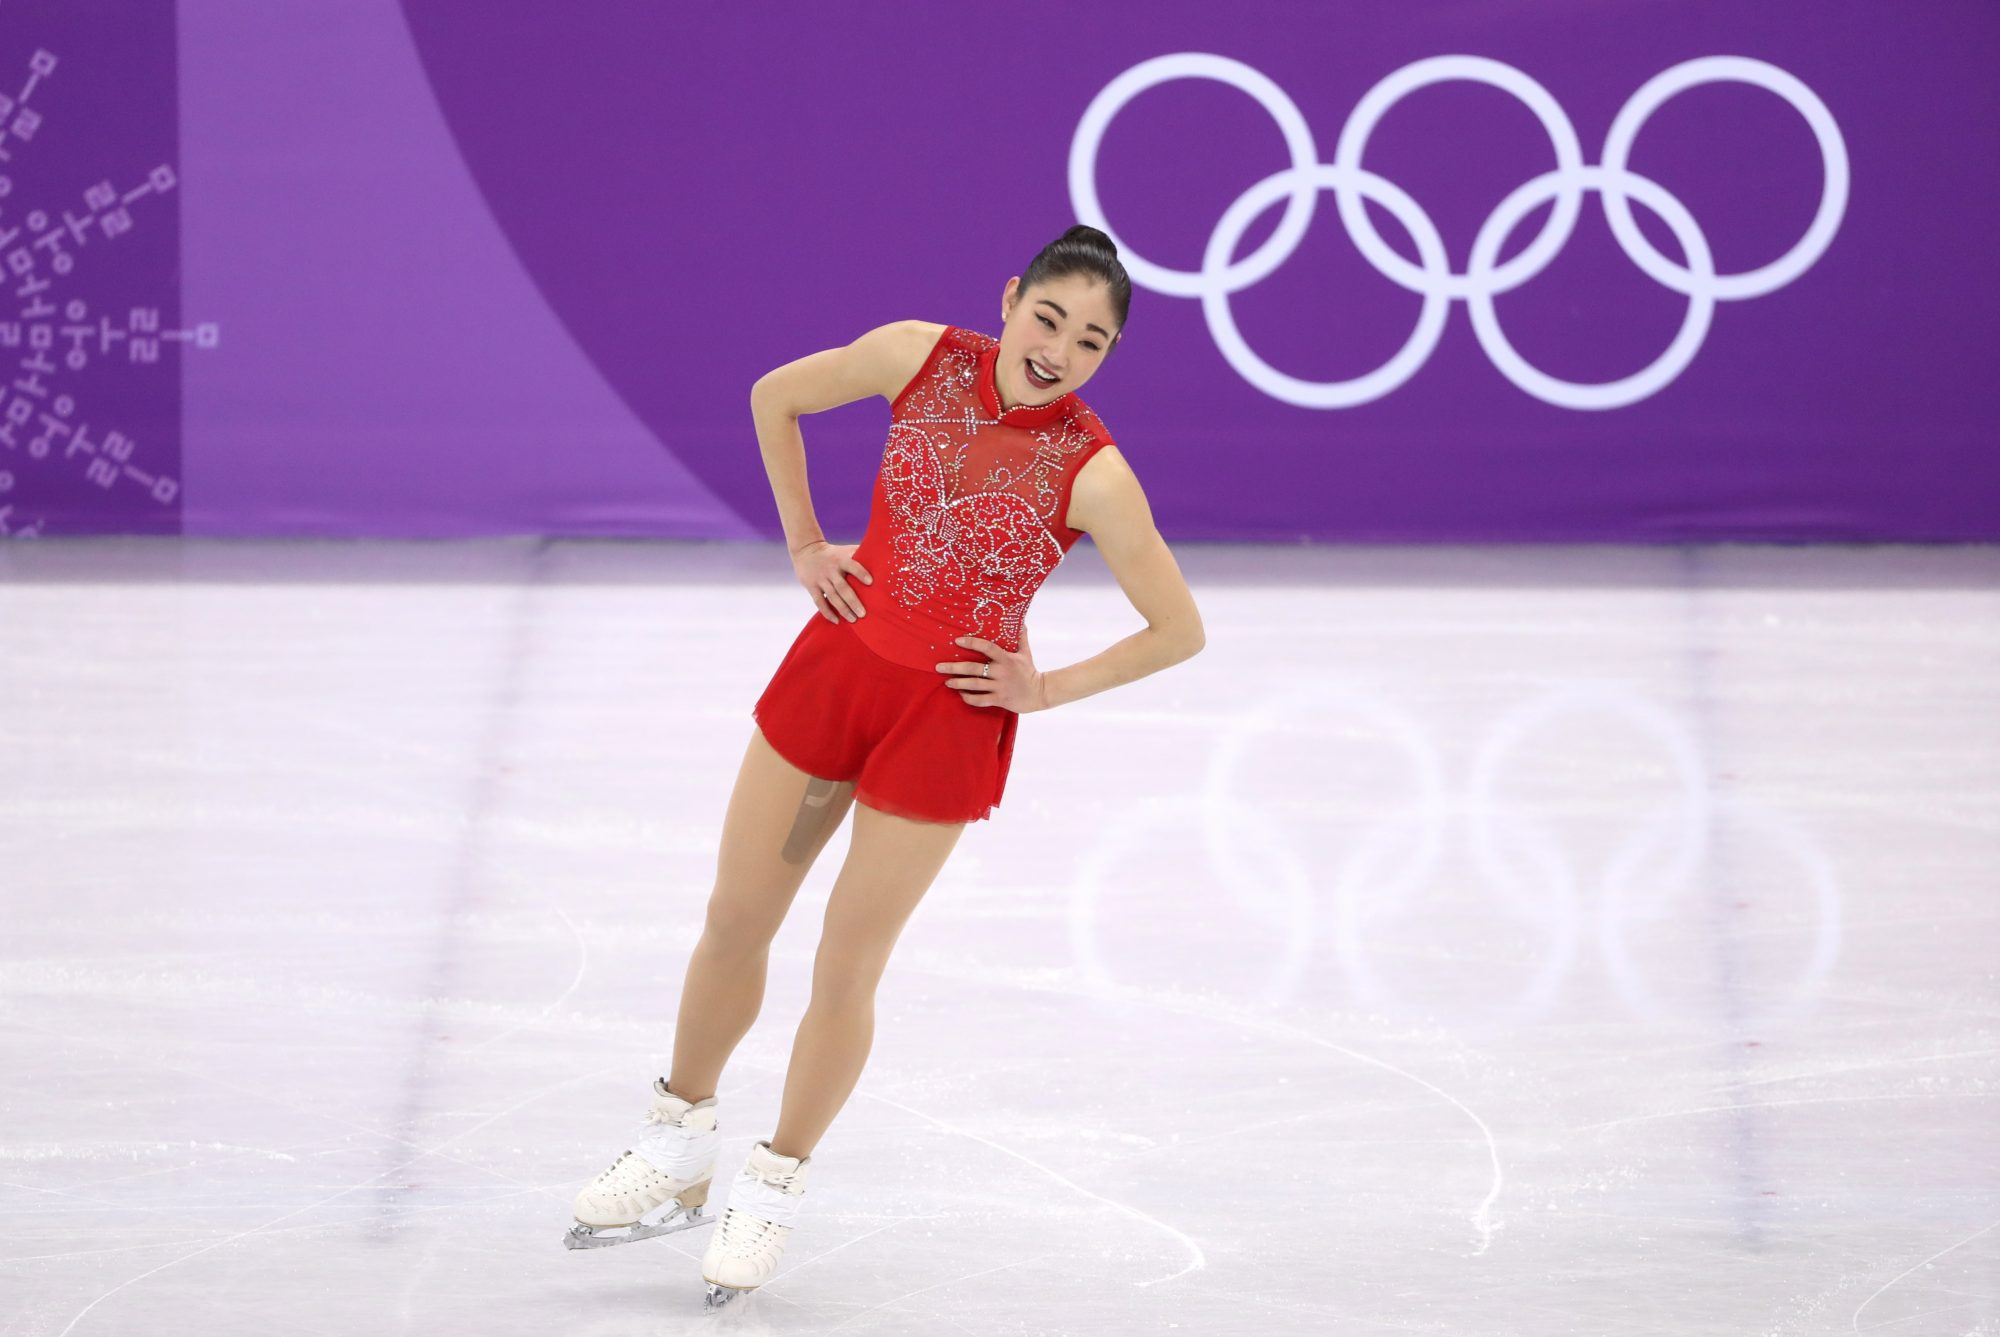 Mirai Nagasu ice skating at the 2018 Winter Olympics